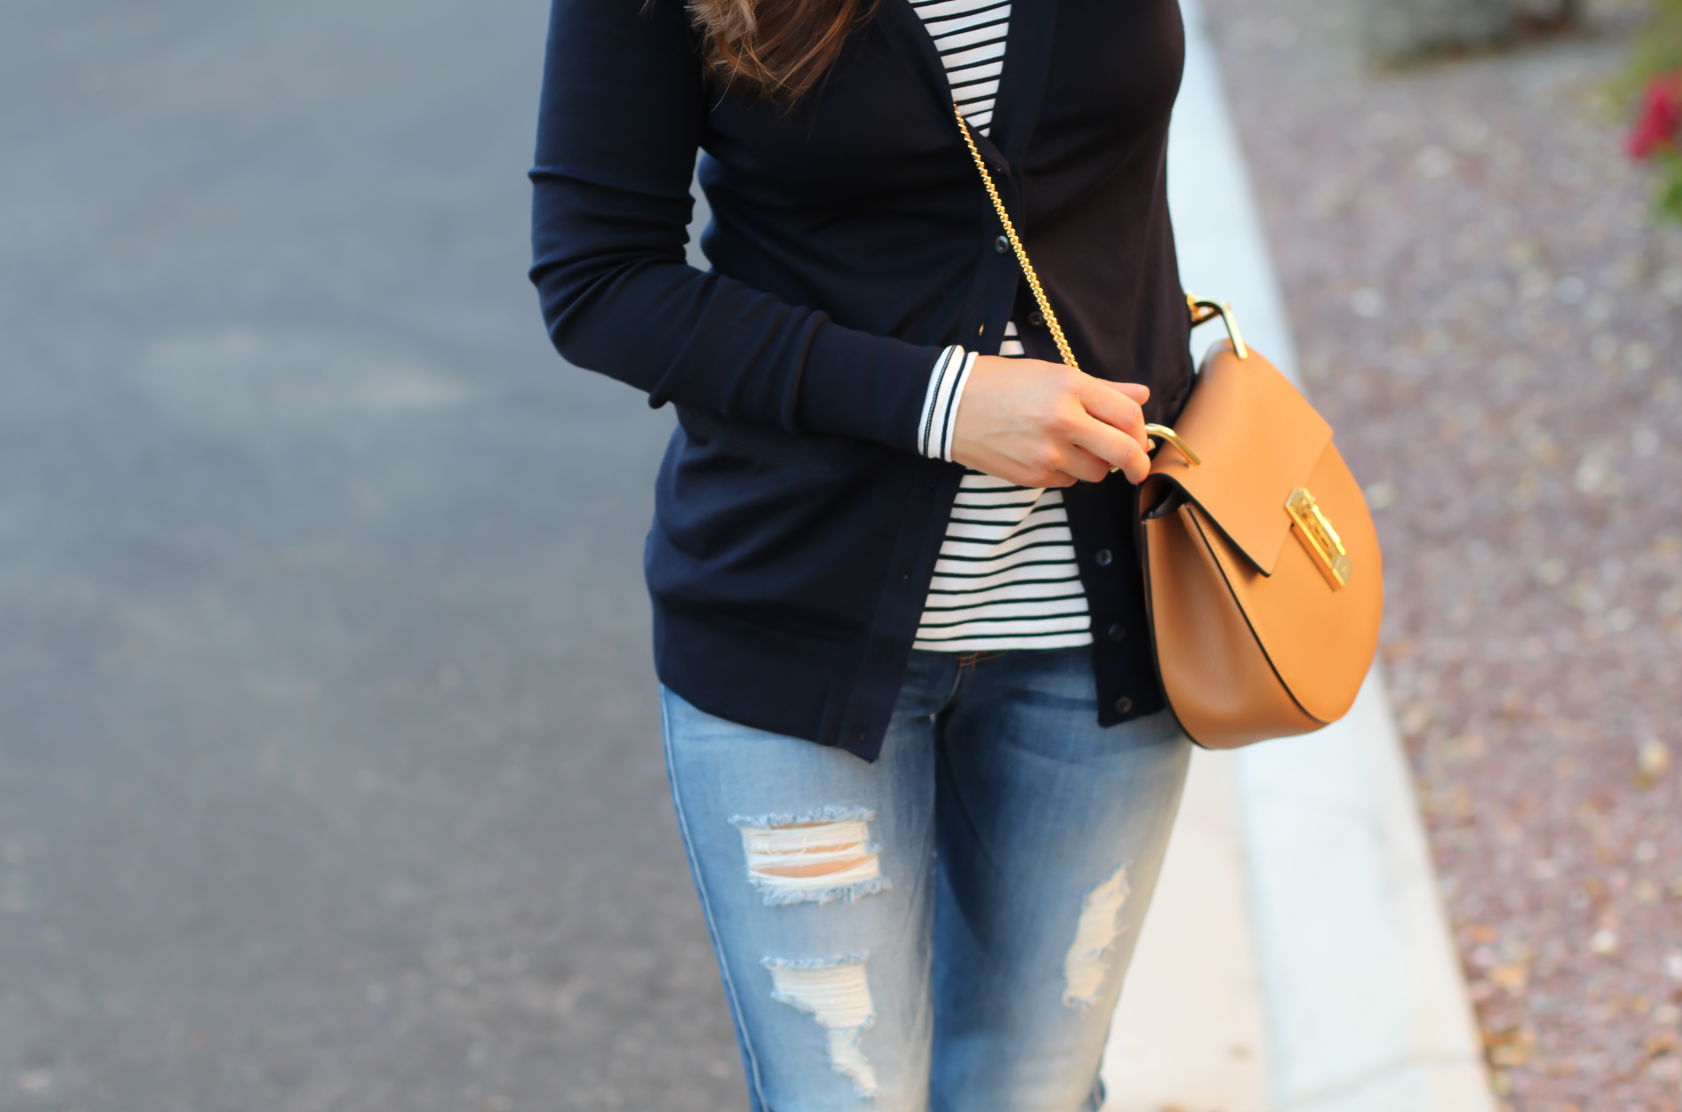 Navy Cotton V Neck Cardigan, Striped Tee, Distressed Skinny Jeans, Tan Flats, Tan Crossbody, J.Cew, 7 for All Mankind, Tory Burch, Chloe